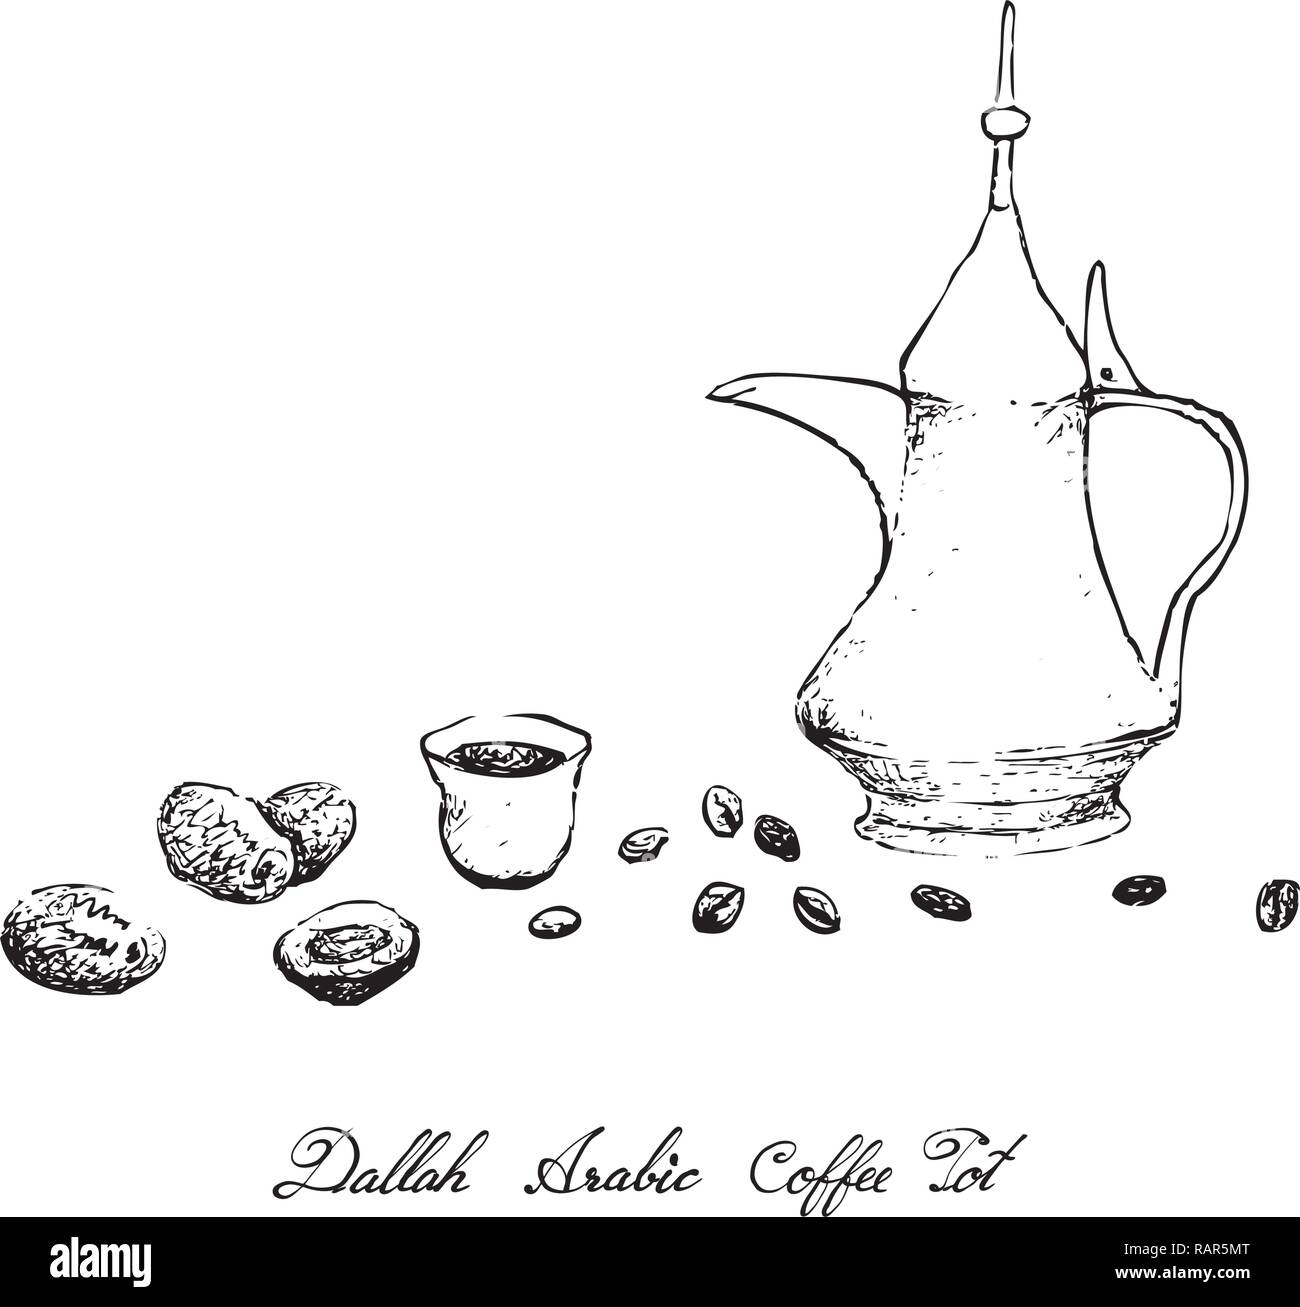 Turkish Cuisine, Hot Coffee with Dallah or Arabic Coffee Used for Centuries to Brew and Serve Qahwa or Gahwa. - Stock Vector